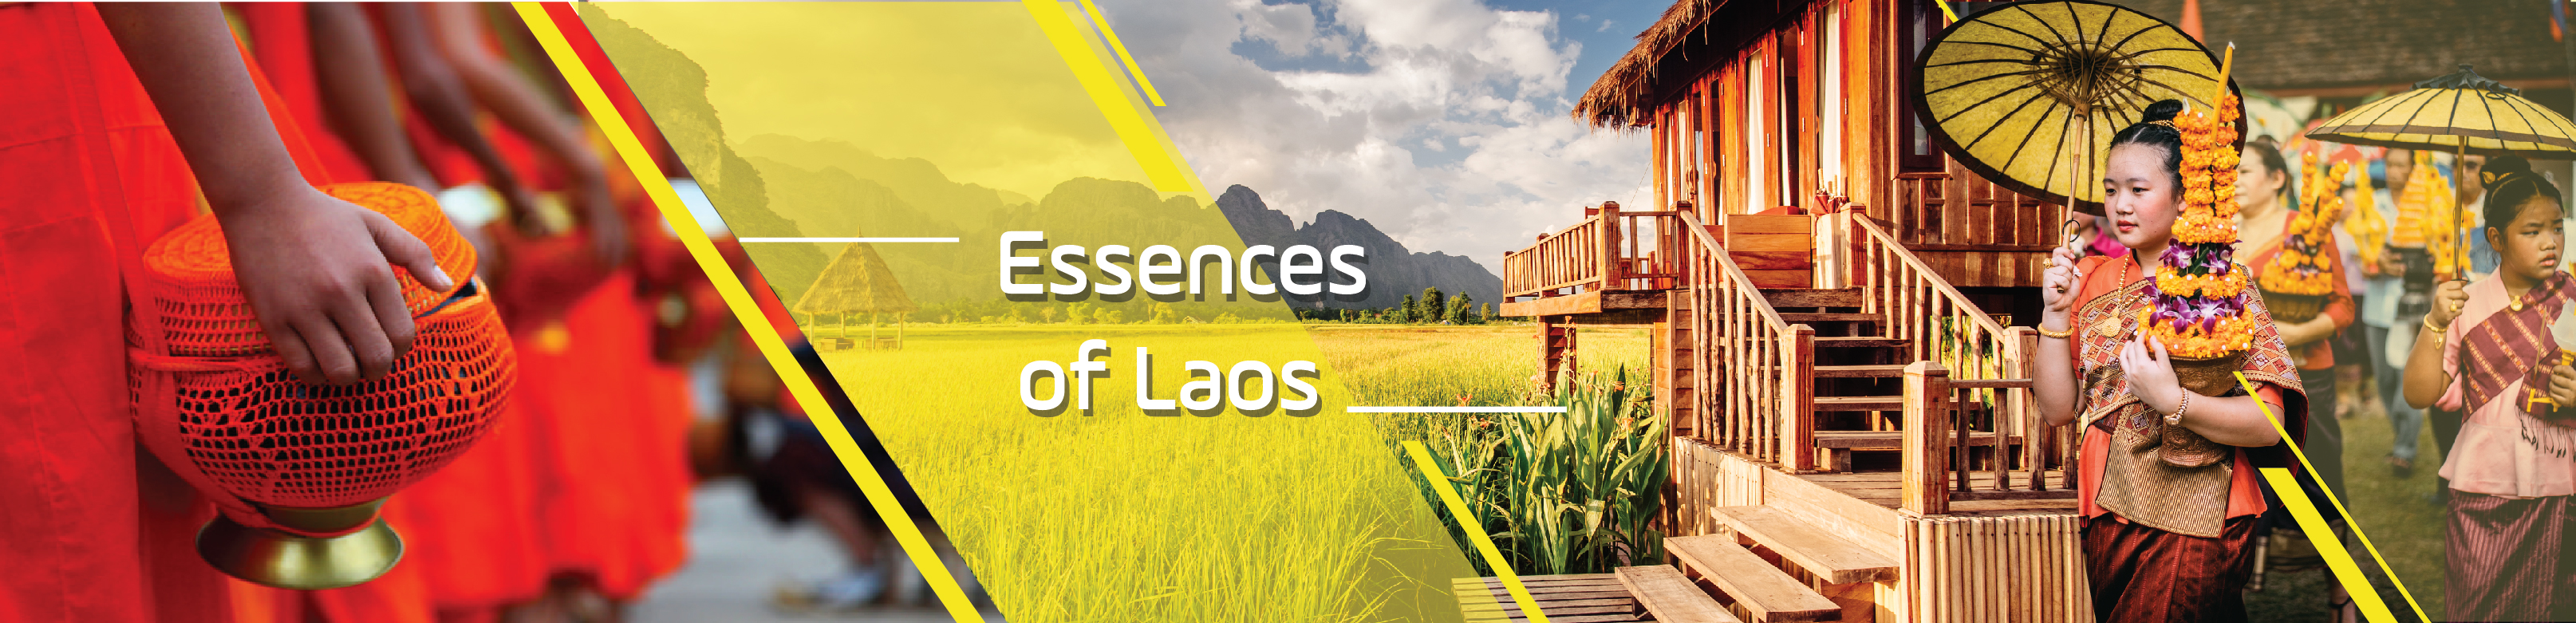 http://indochinatravelland.com/essences-of-laos-5days/4nights